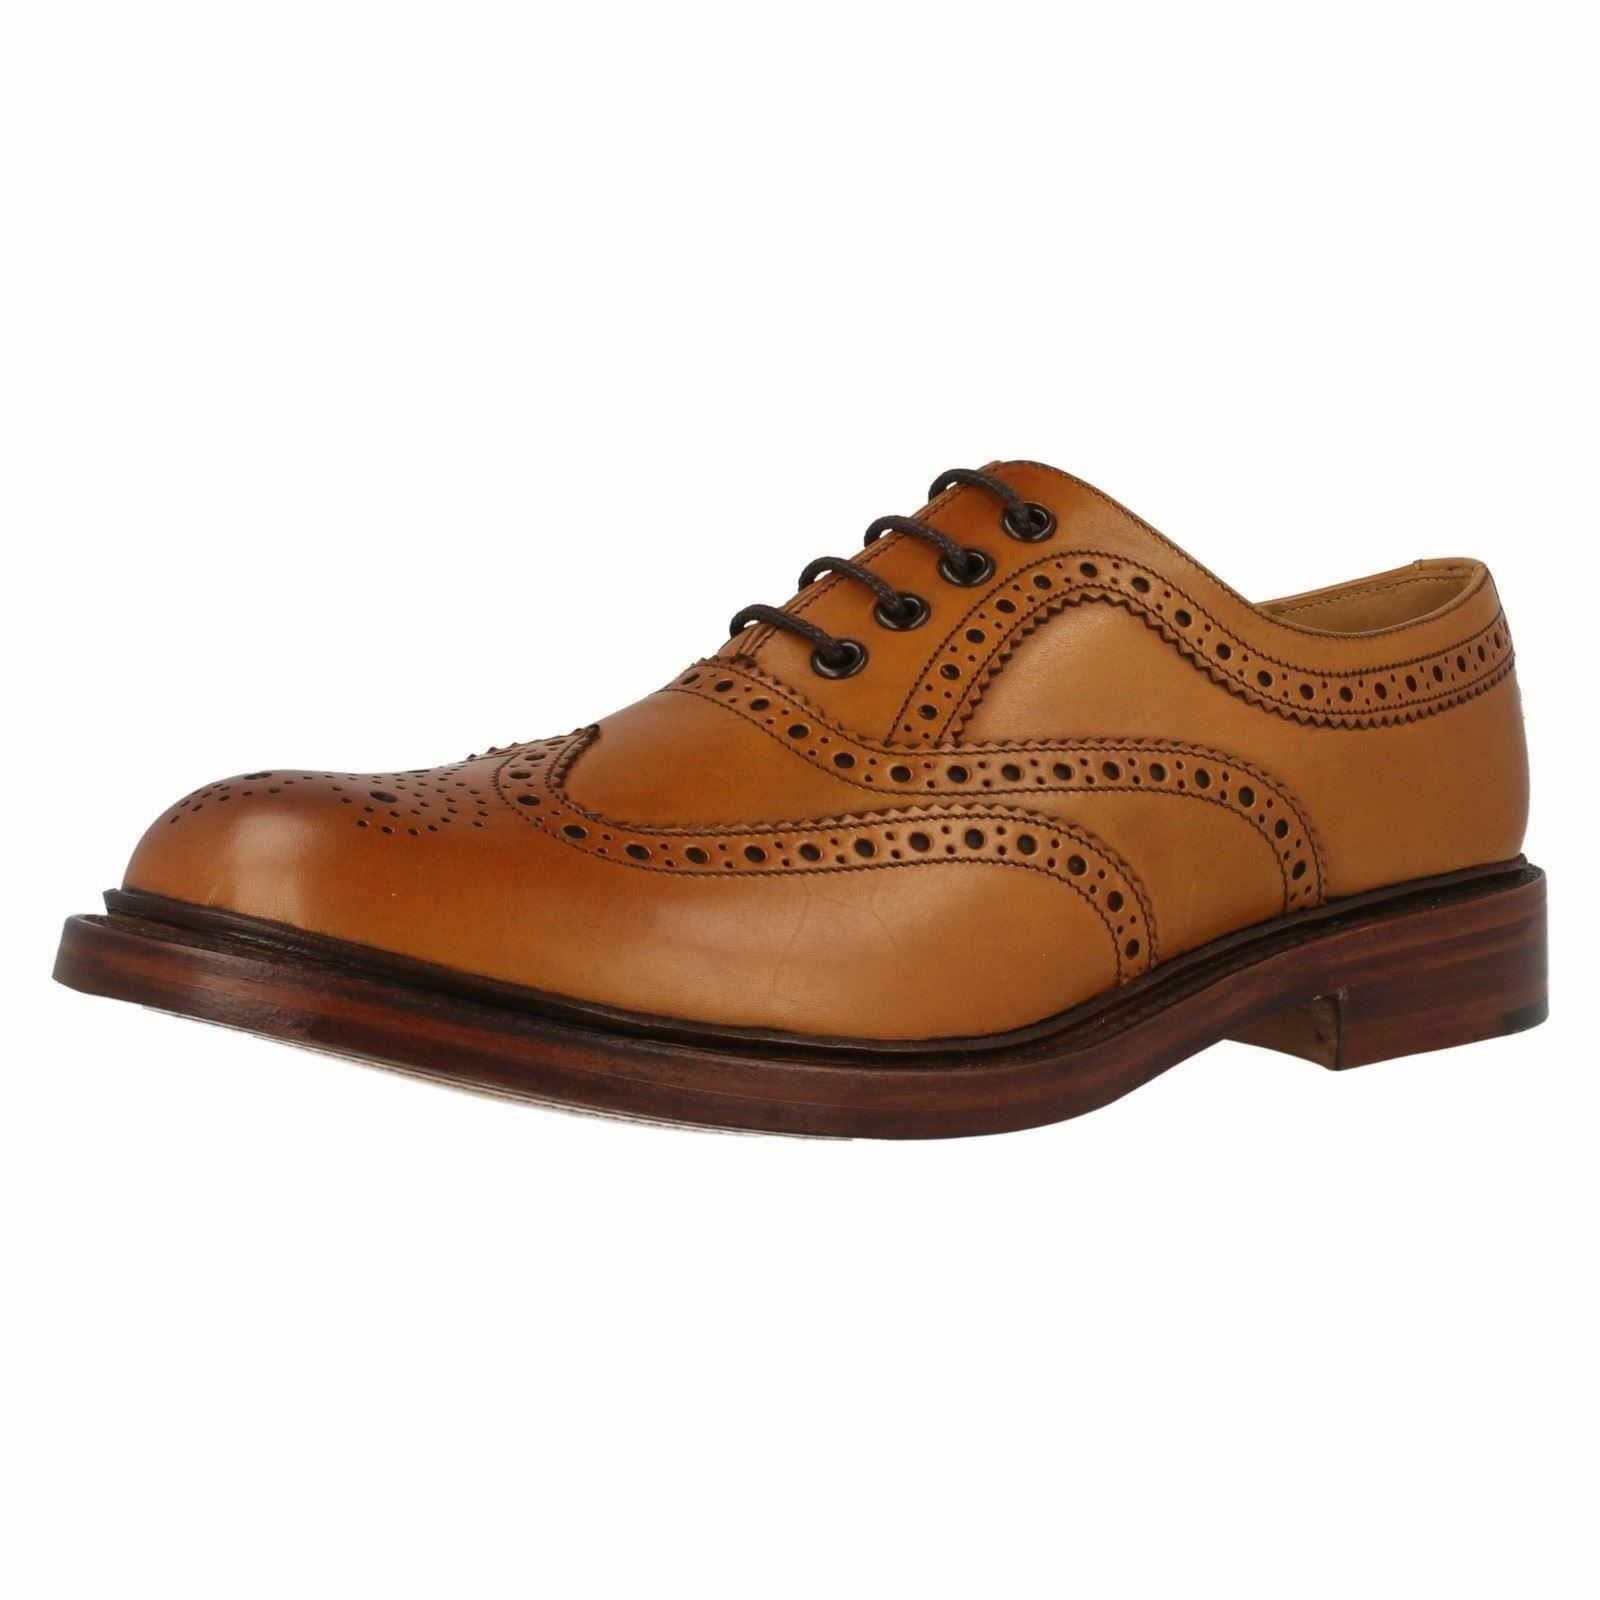 Herren LOAKES BURNISHED TAN CALF LEATHER LACE UP SHOE STYLE - ASHBY G FITTING 0bf234